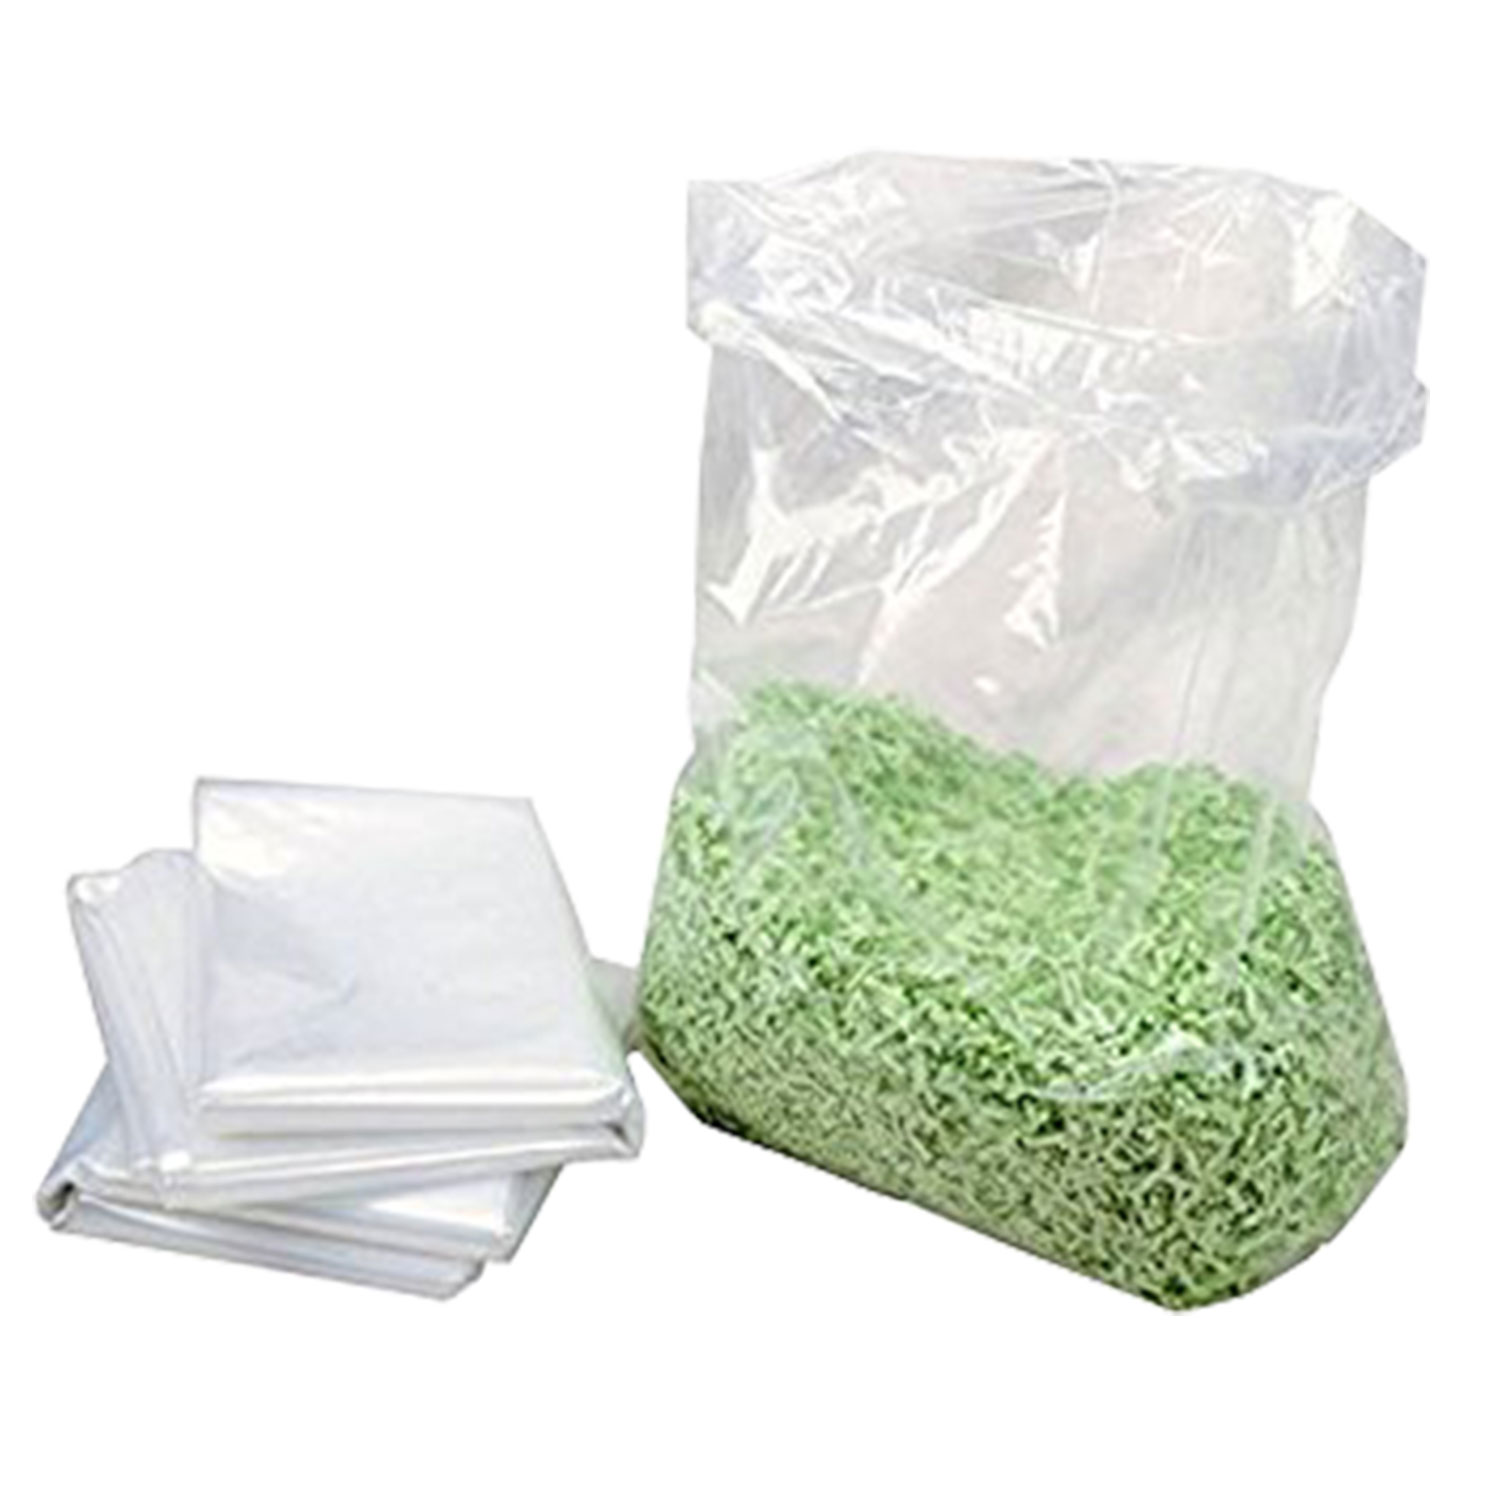 IDEAL Shredder Bags For IDEAL 4605 Shredder (9000030)